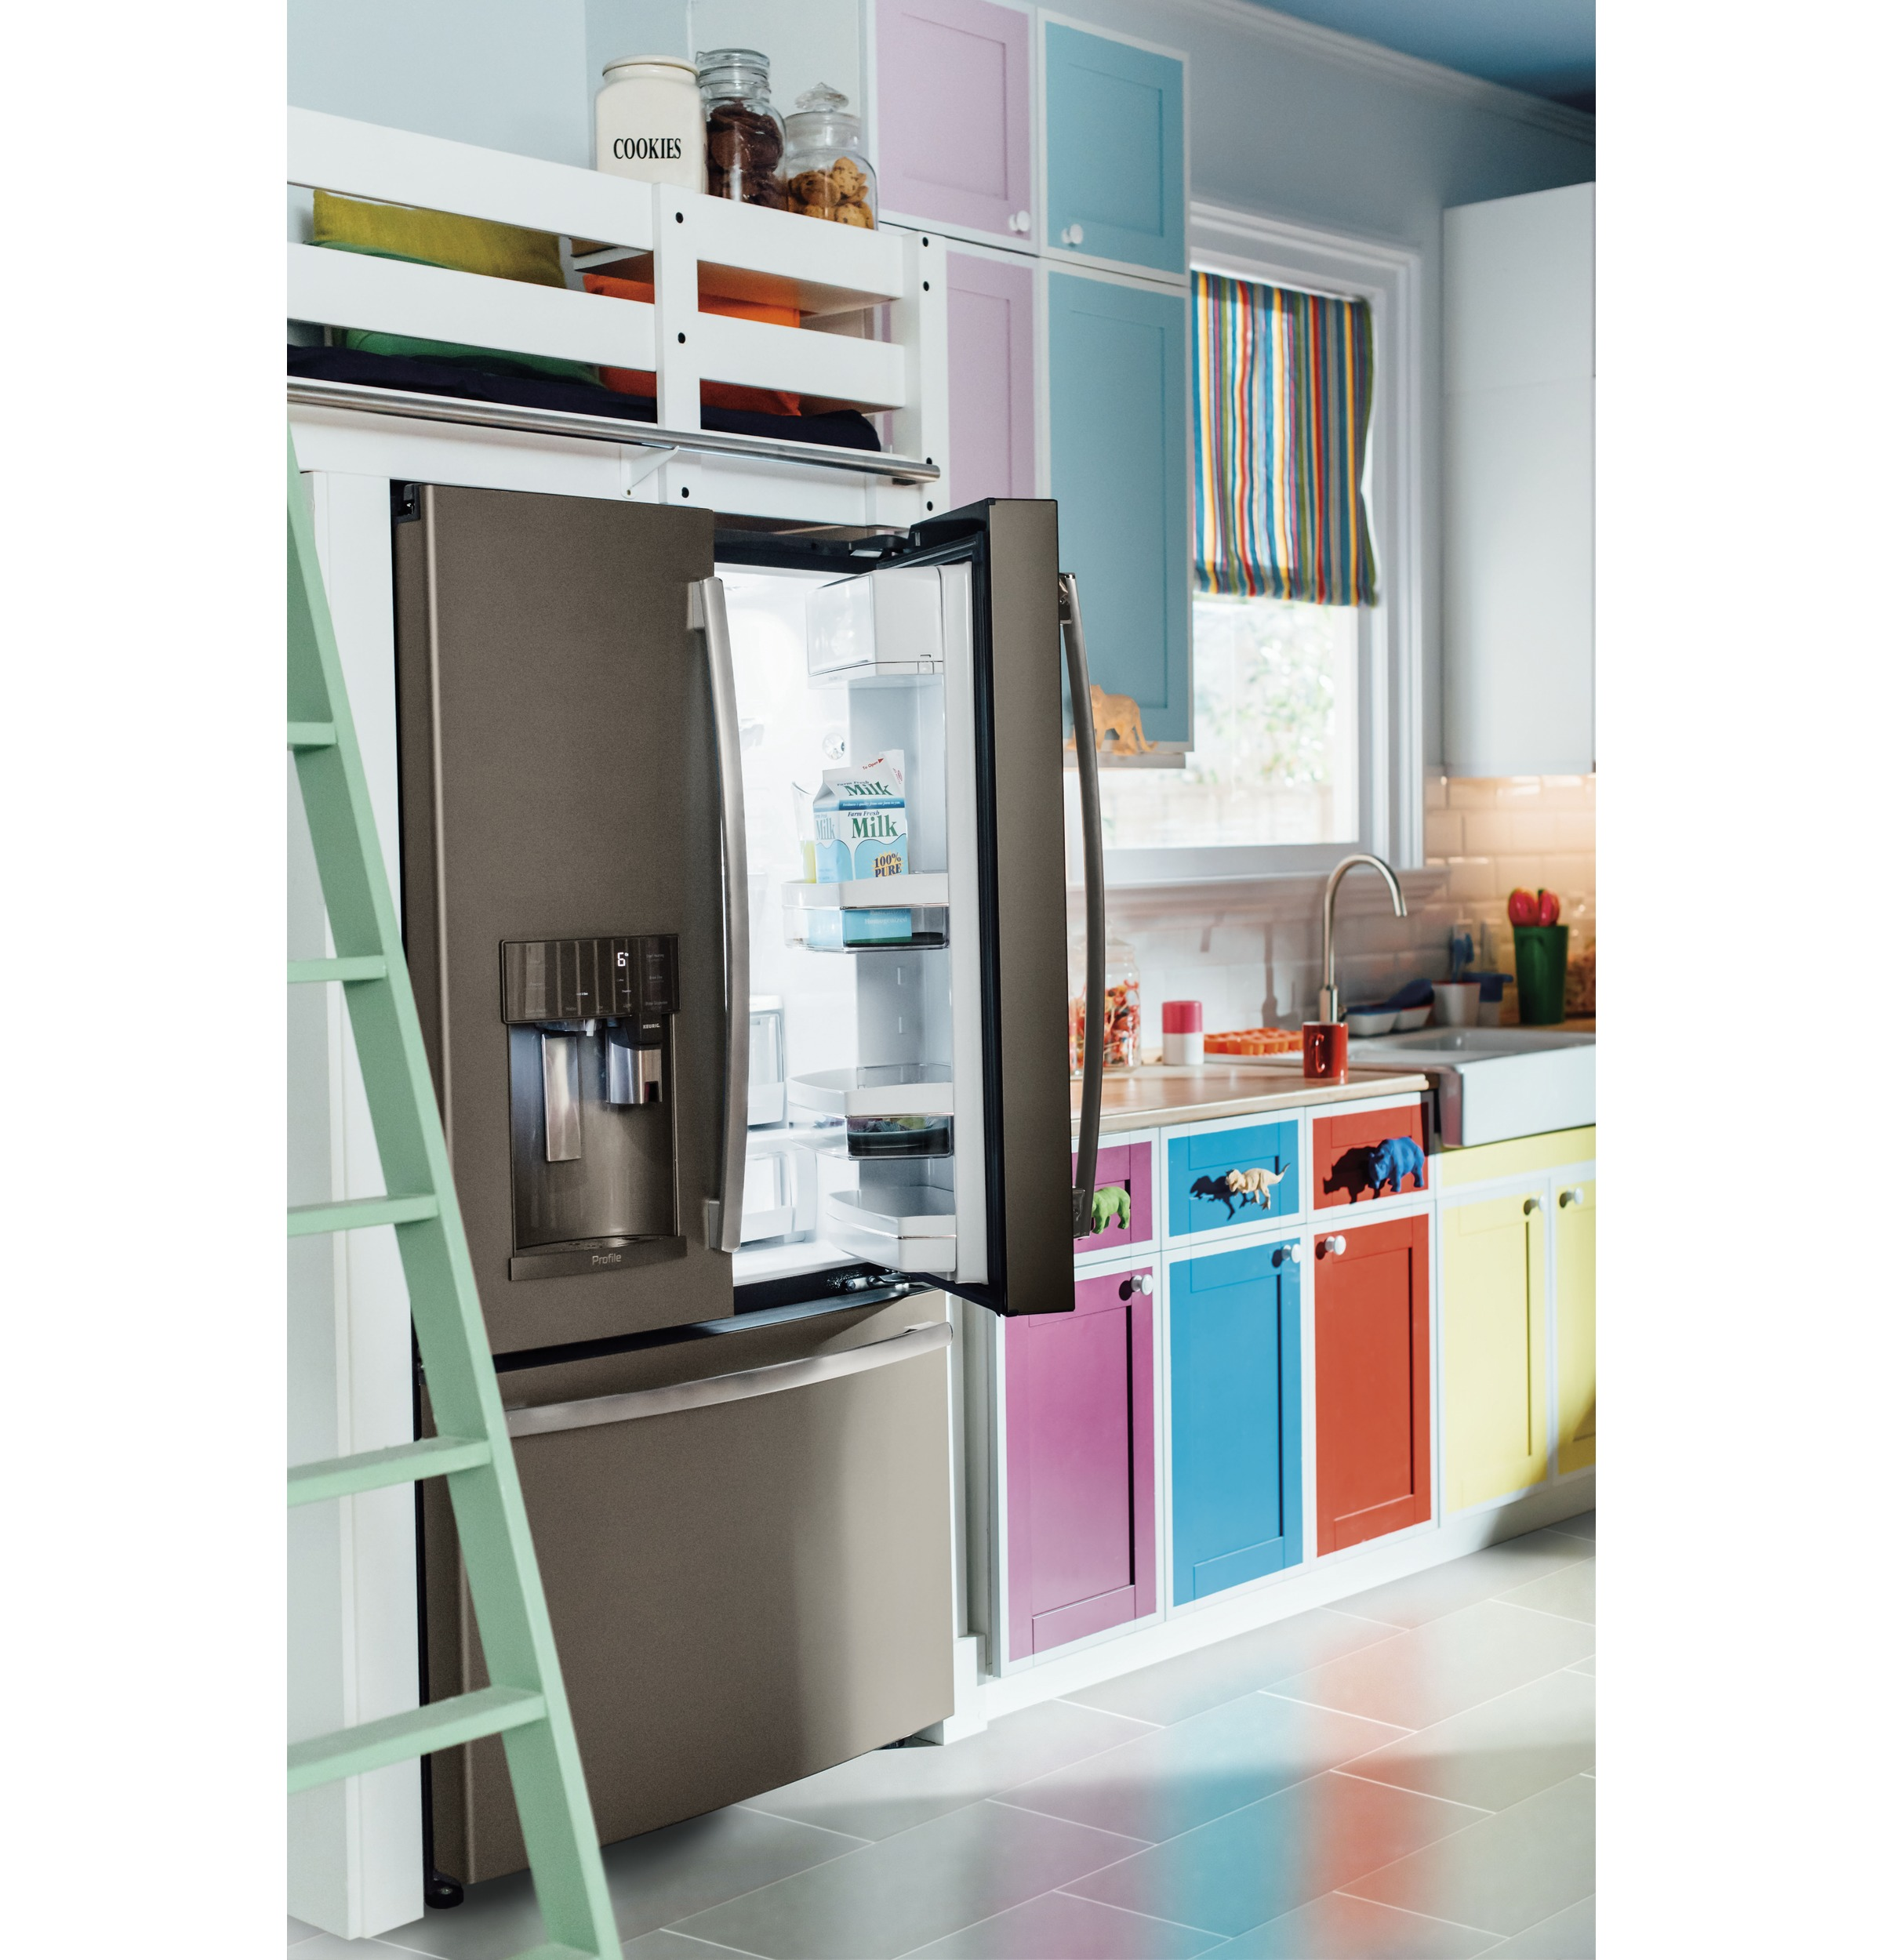 Model: PFE28PMKES | GE Profile™ Series ENERGY STAR® 27.8 Cu. Ft. French-Door Refrigerator with Keurig® K-Cup® Brewing System